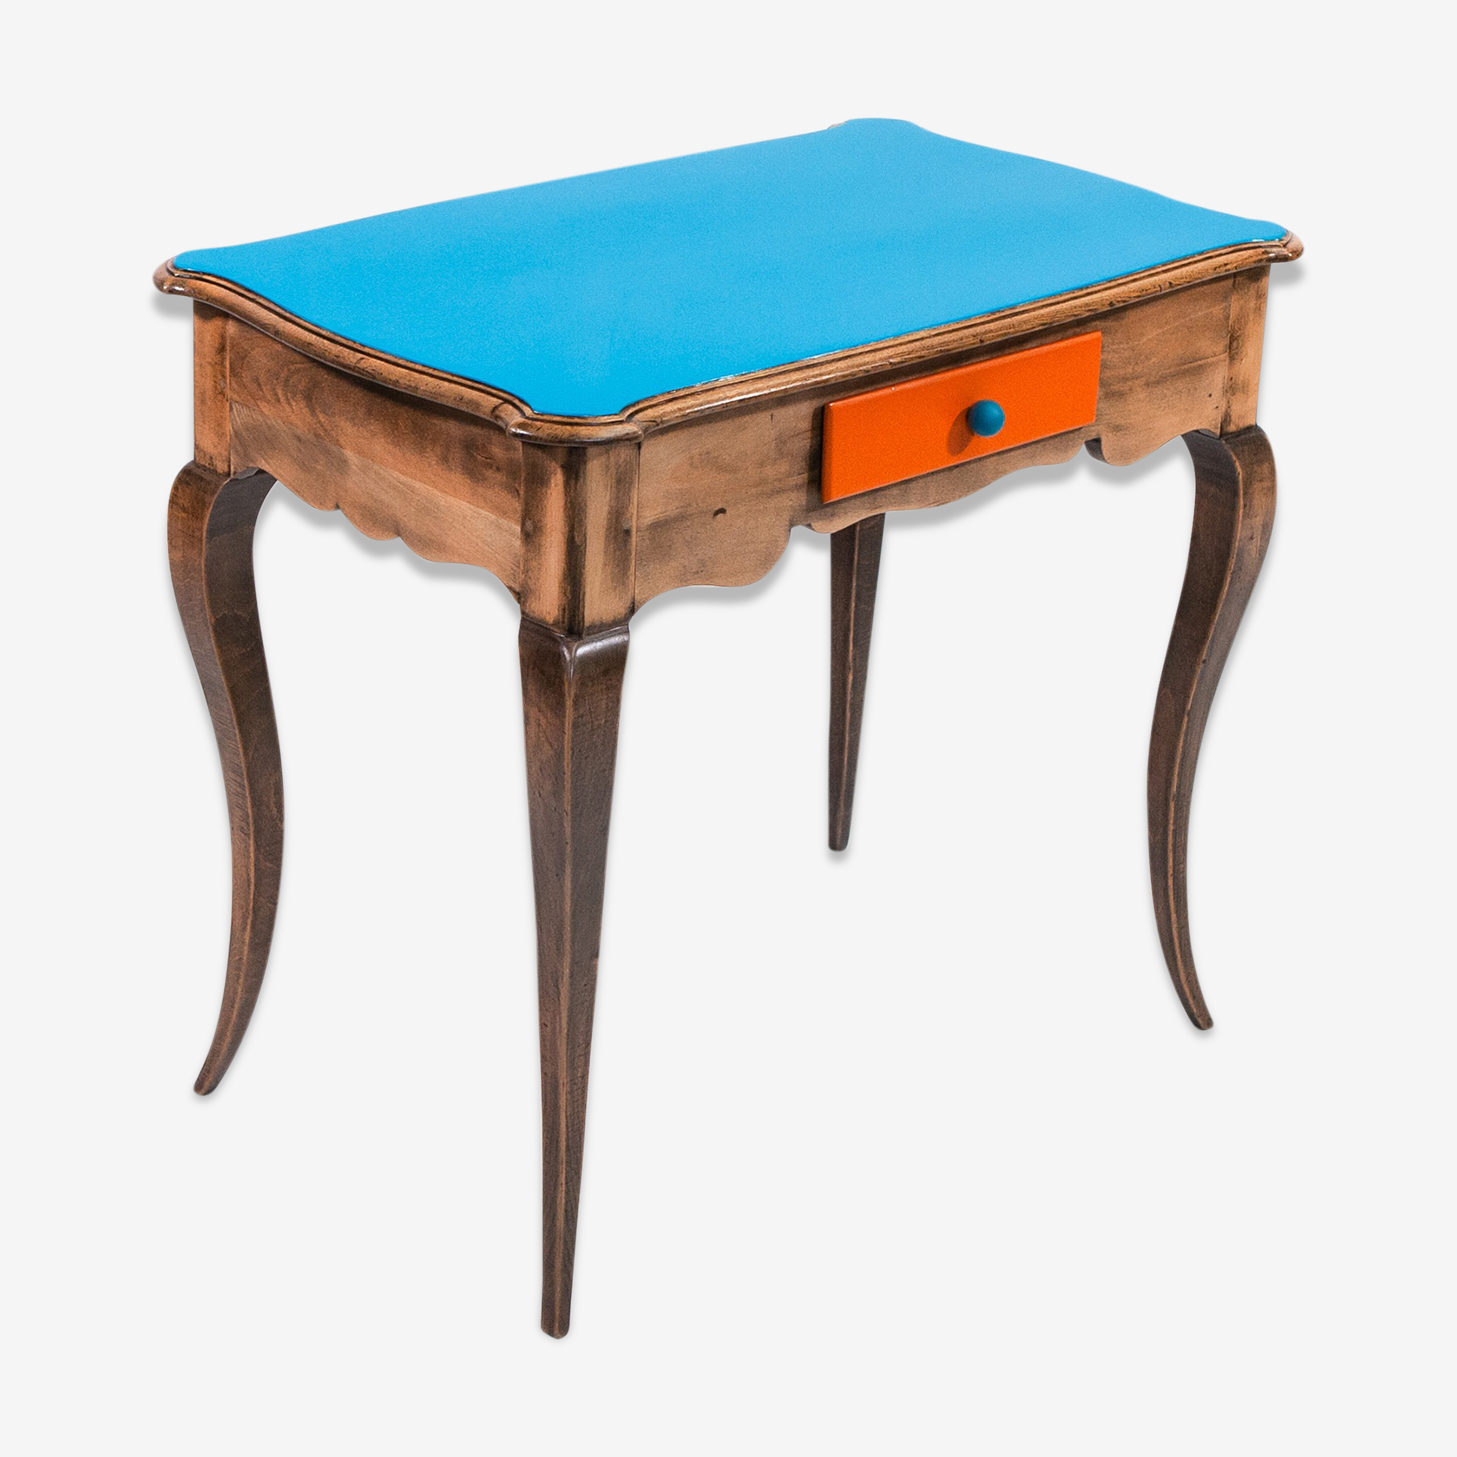 Blue, Orange and natural wood desk in solid oak with curved legs